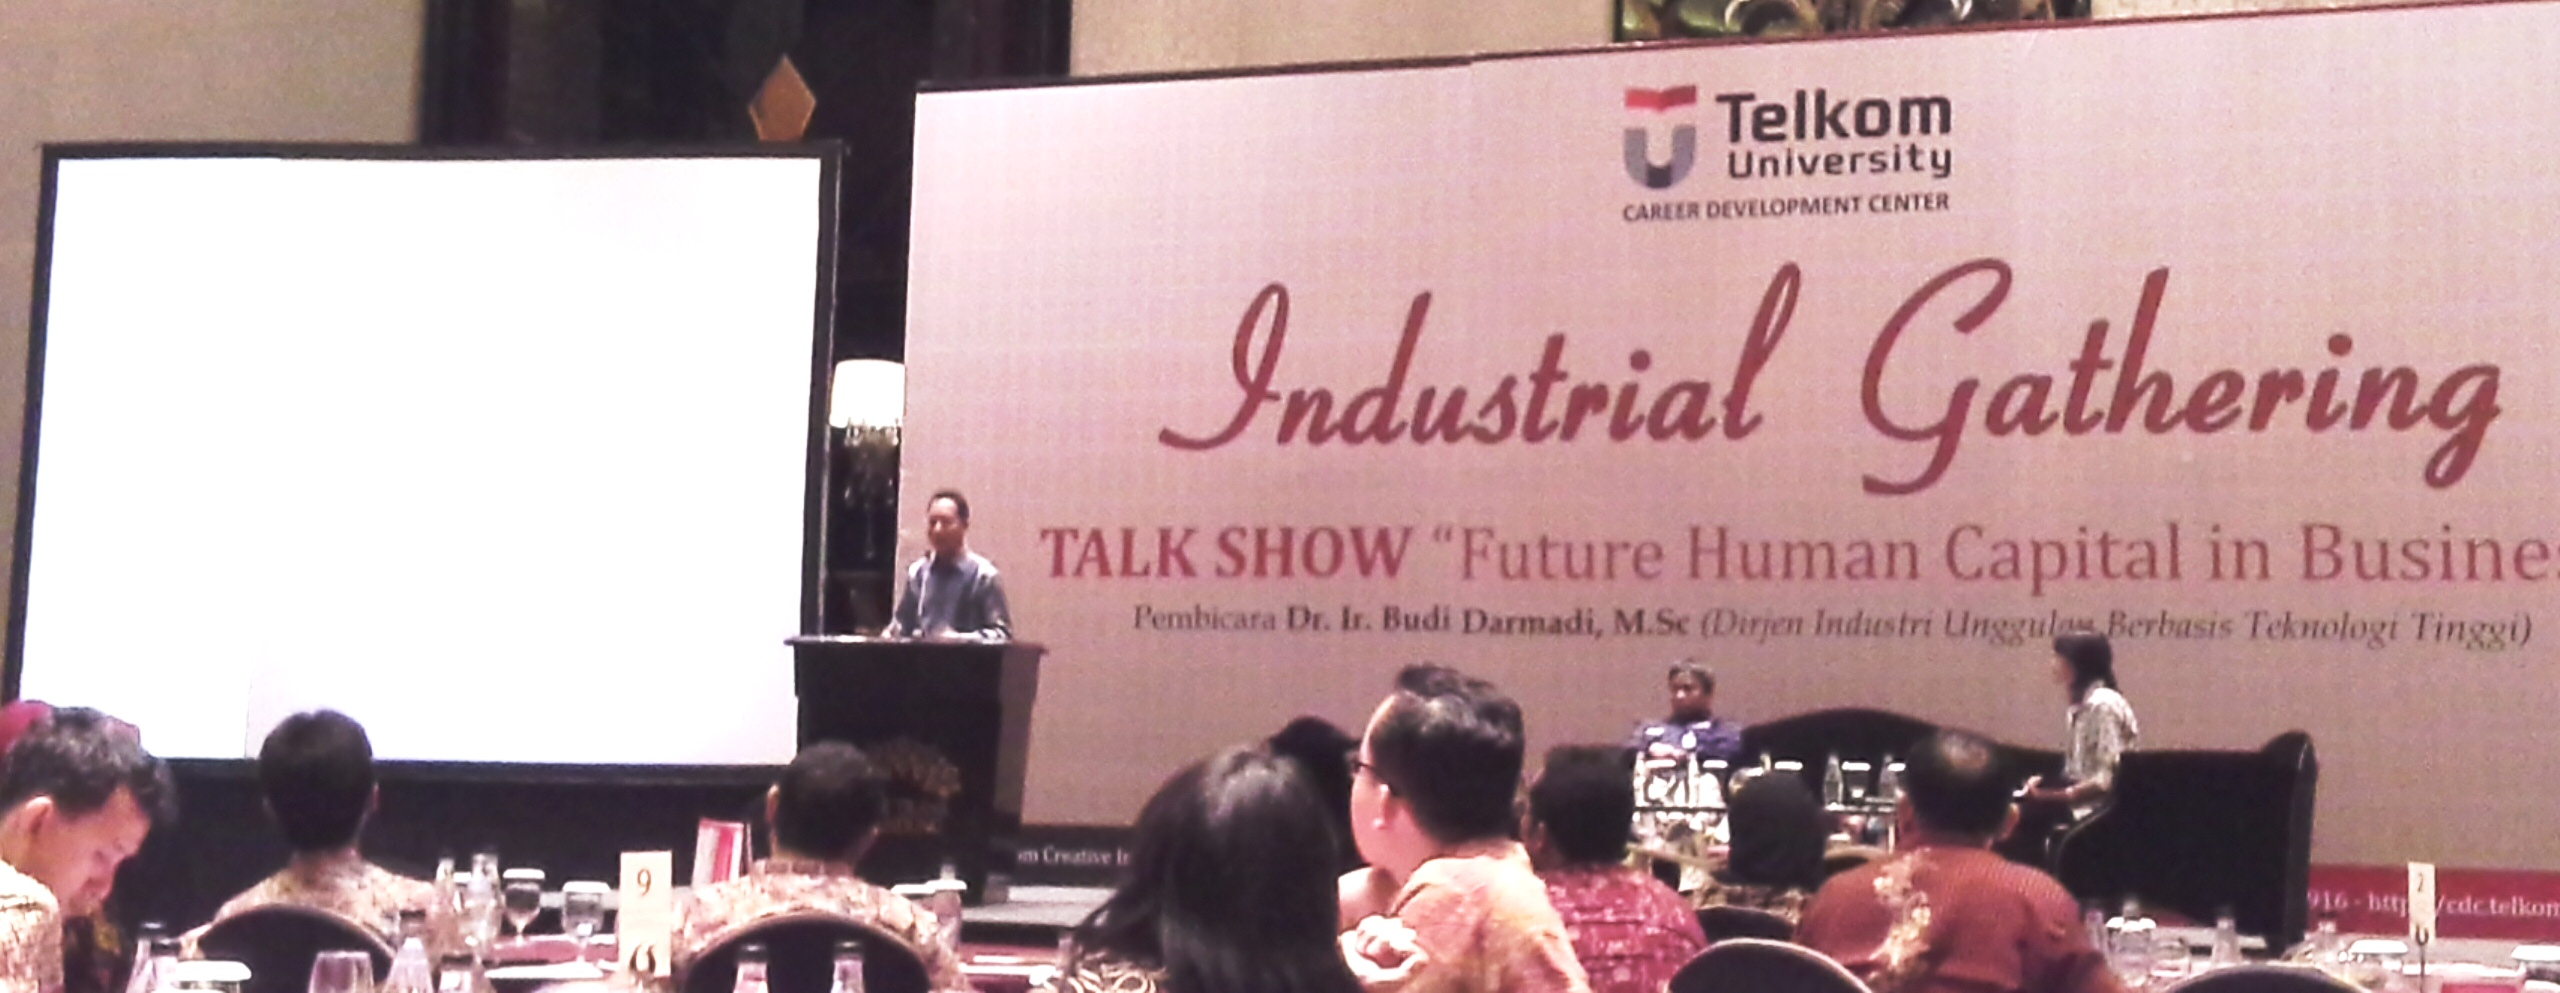 Telkom University Industrial Gathering